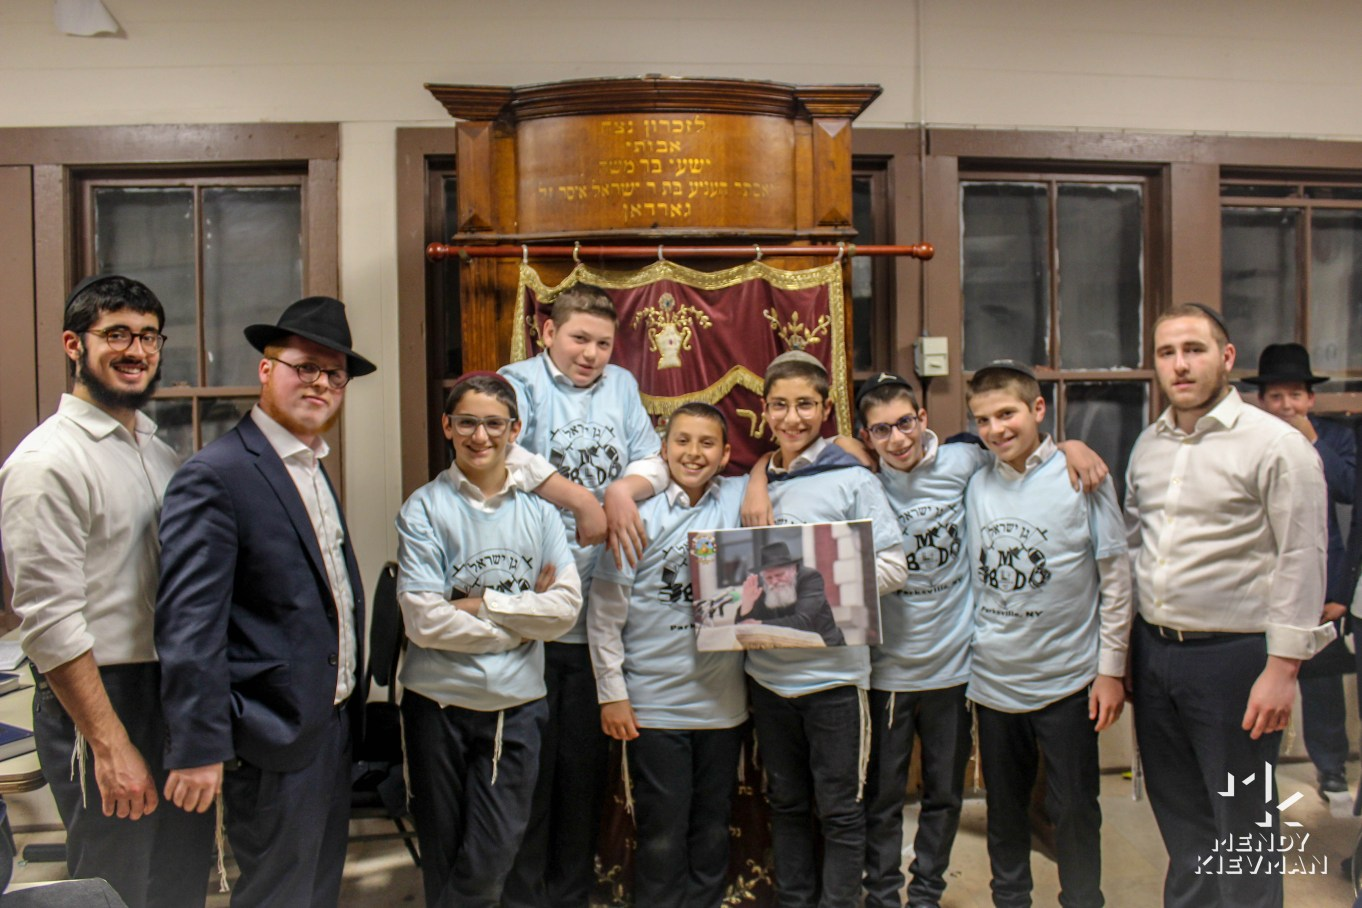 Winners of BMD Shabbos T-shirts